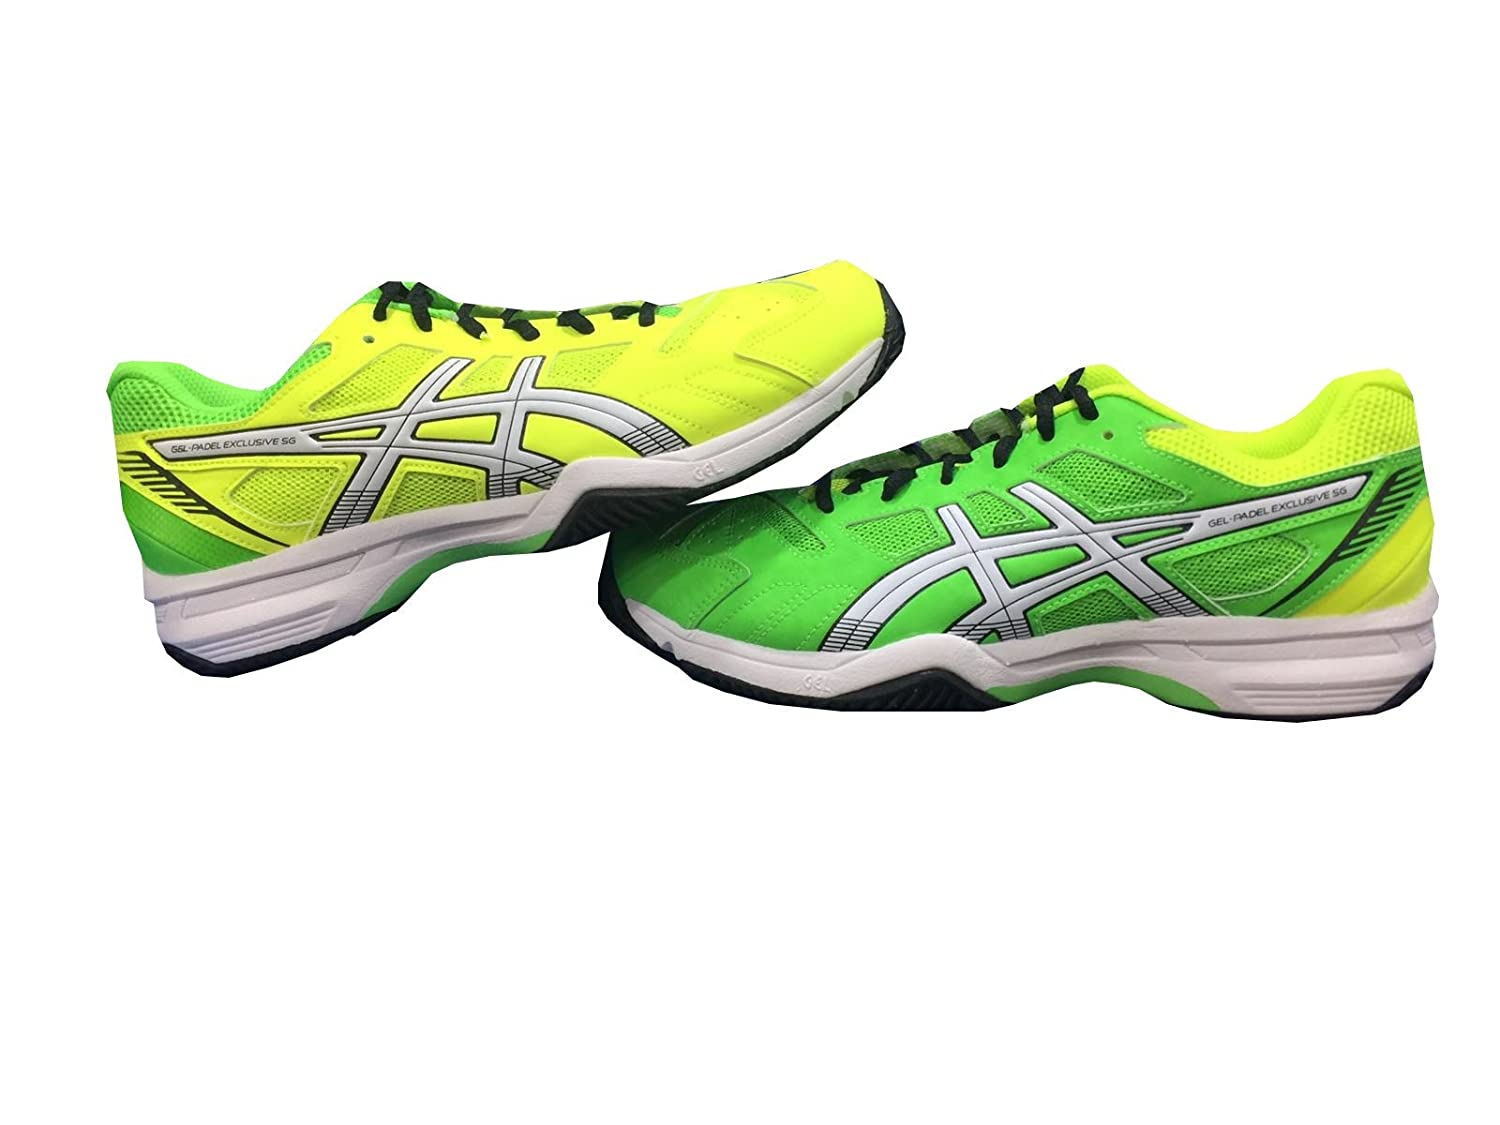 ASICS GEL PADEL EXCLUSIVE 4 SG E515N 8501 SAFETY YELLOW